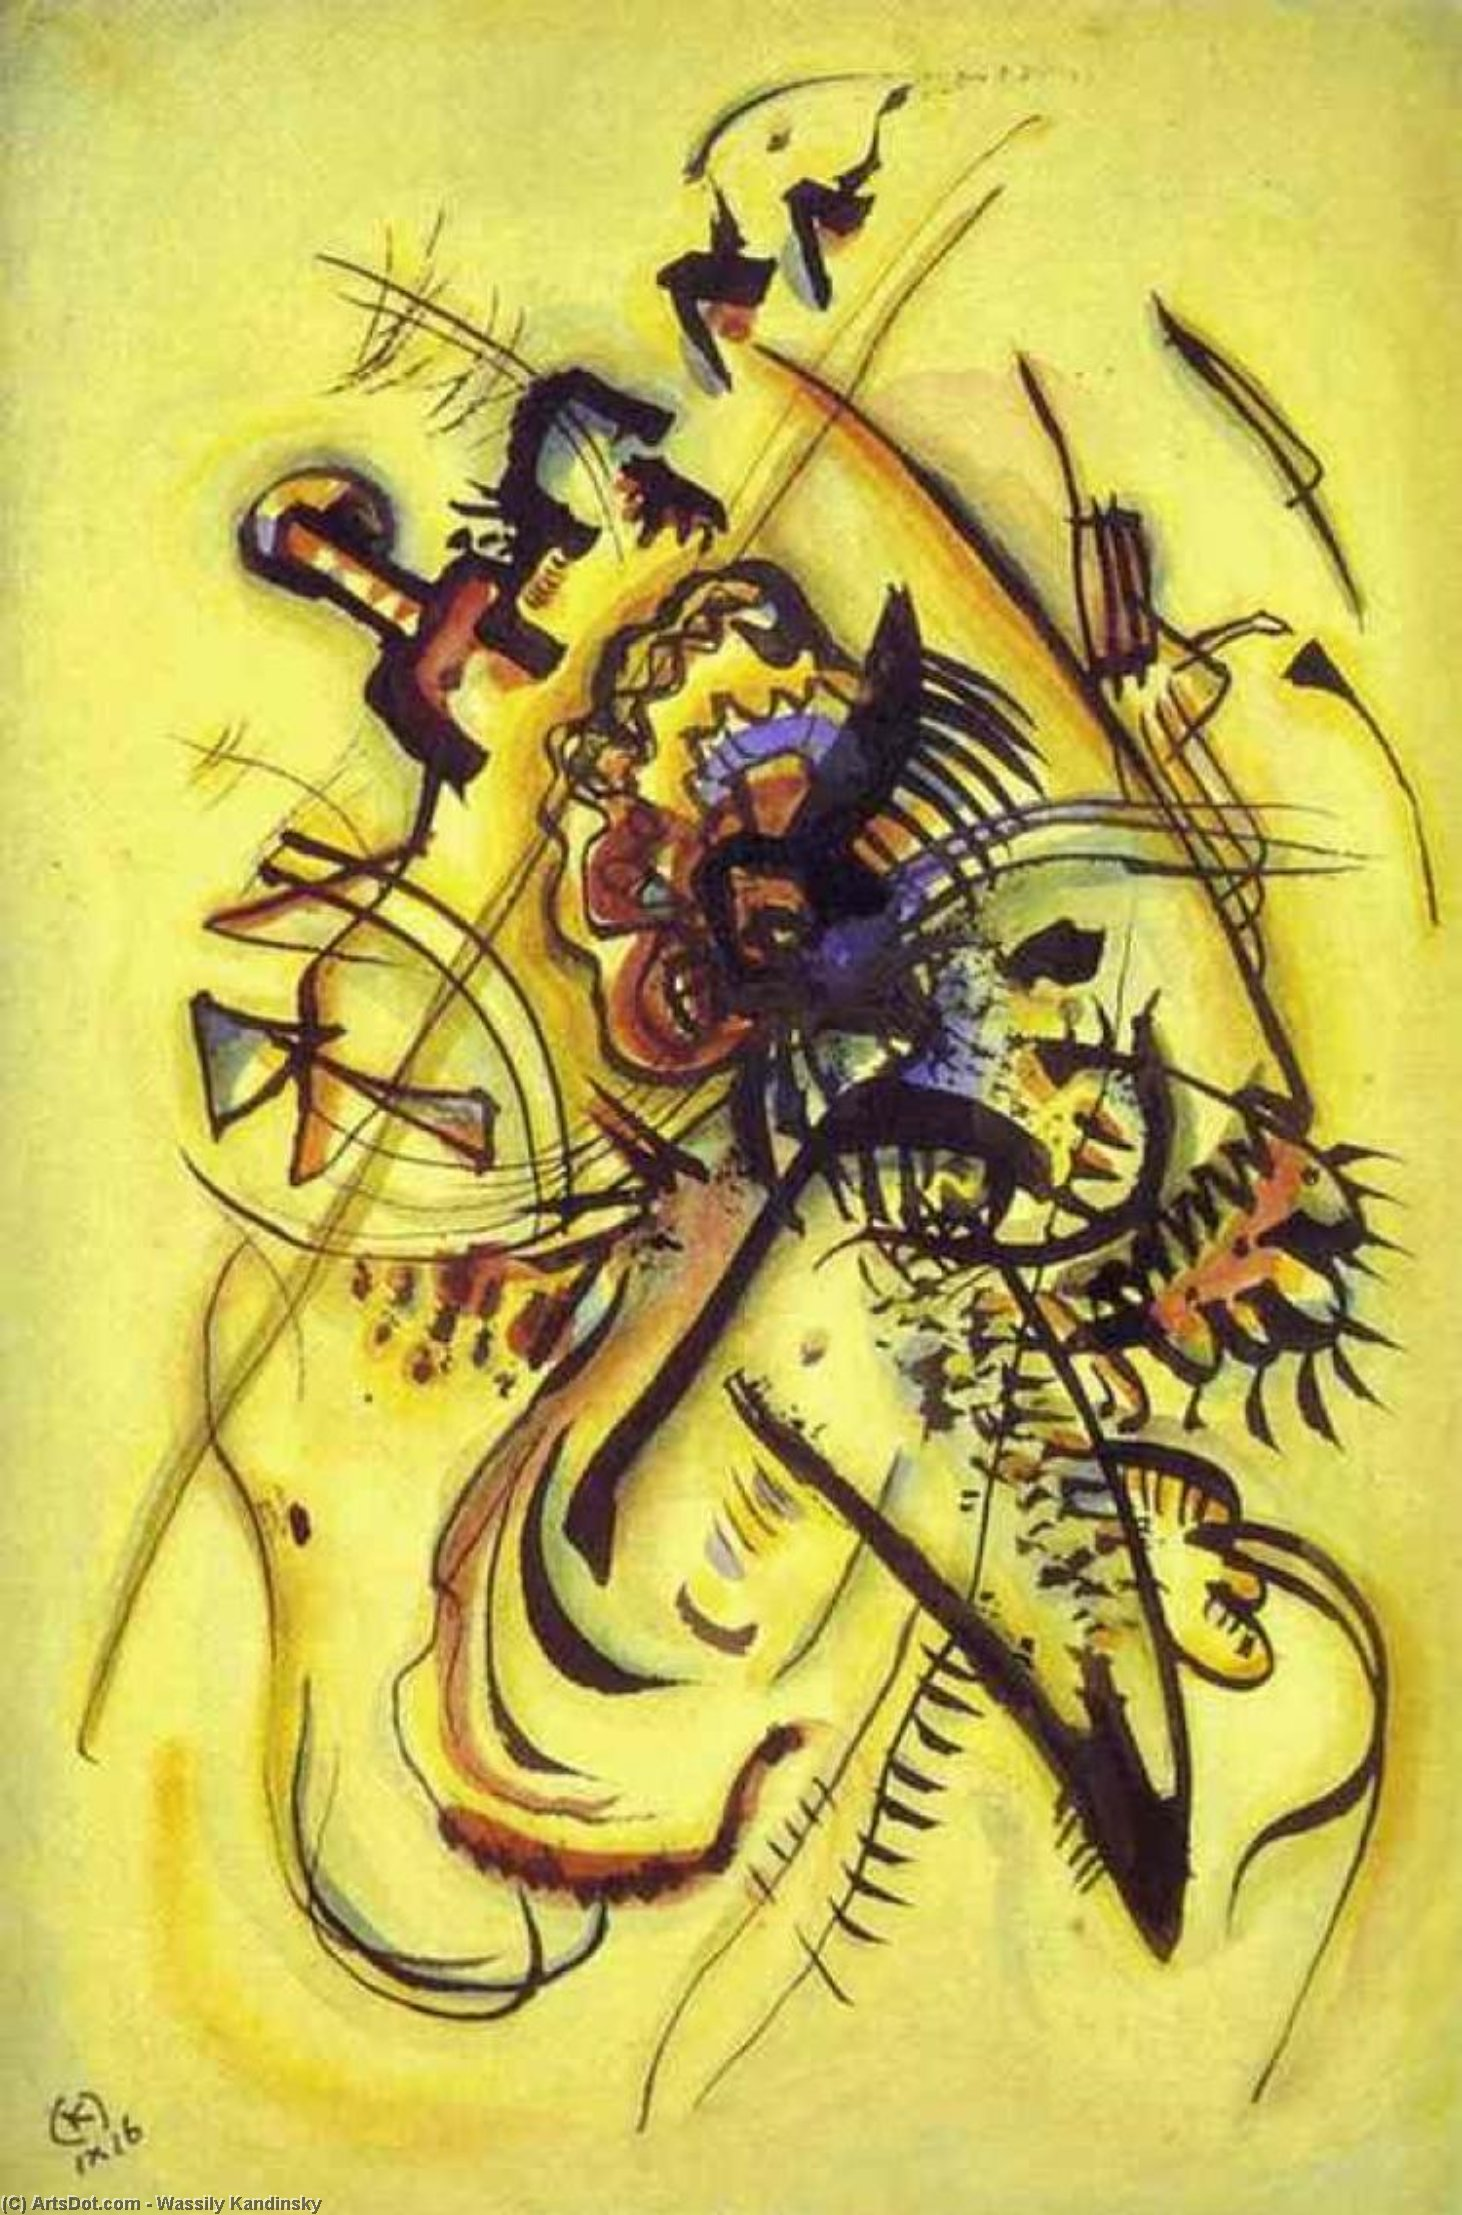 Wikioo.org - The Encyclopedia of Fine Arts - Painting, Artwork by Wassily Kandinsky - To the Unknown Voice